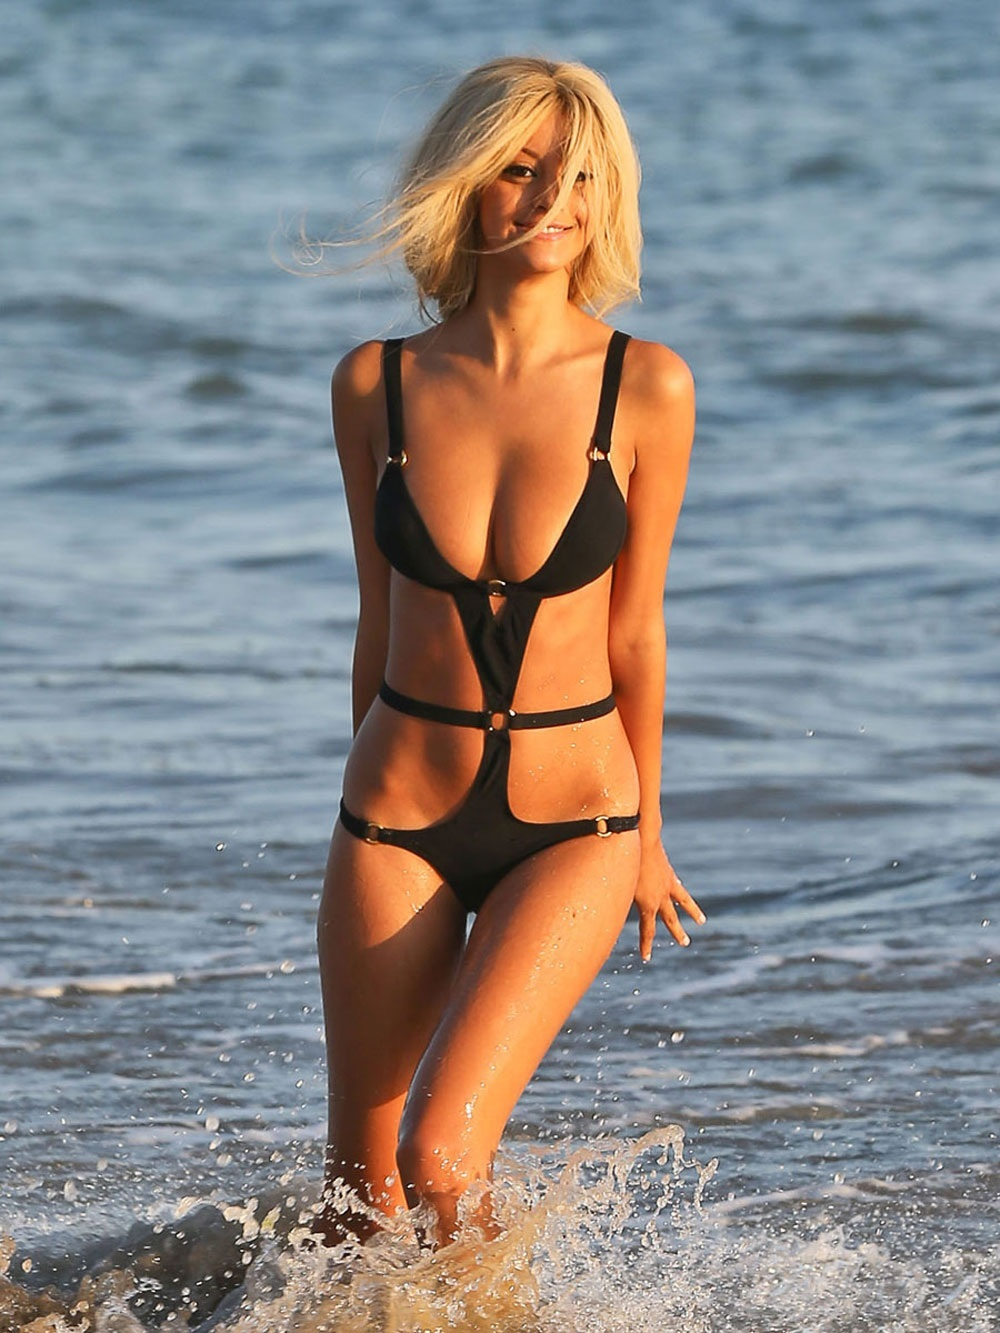 Zahia Dehar In Bikini At Beach In Malibu